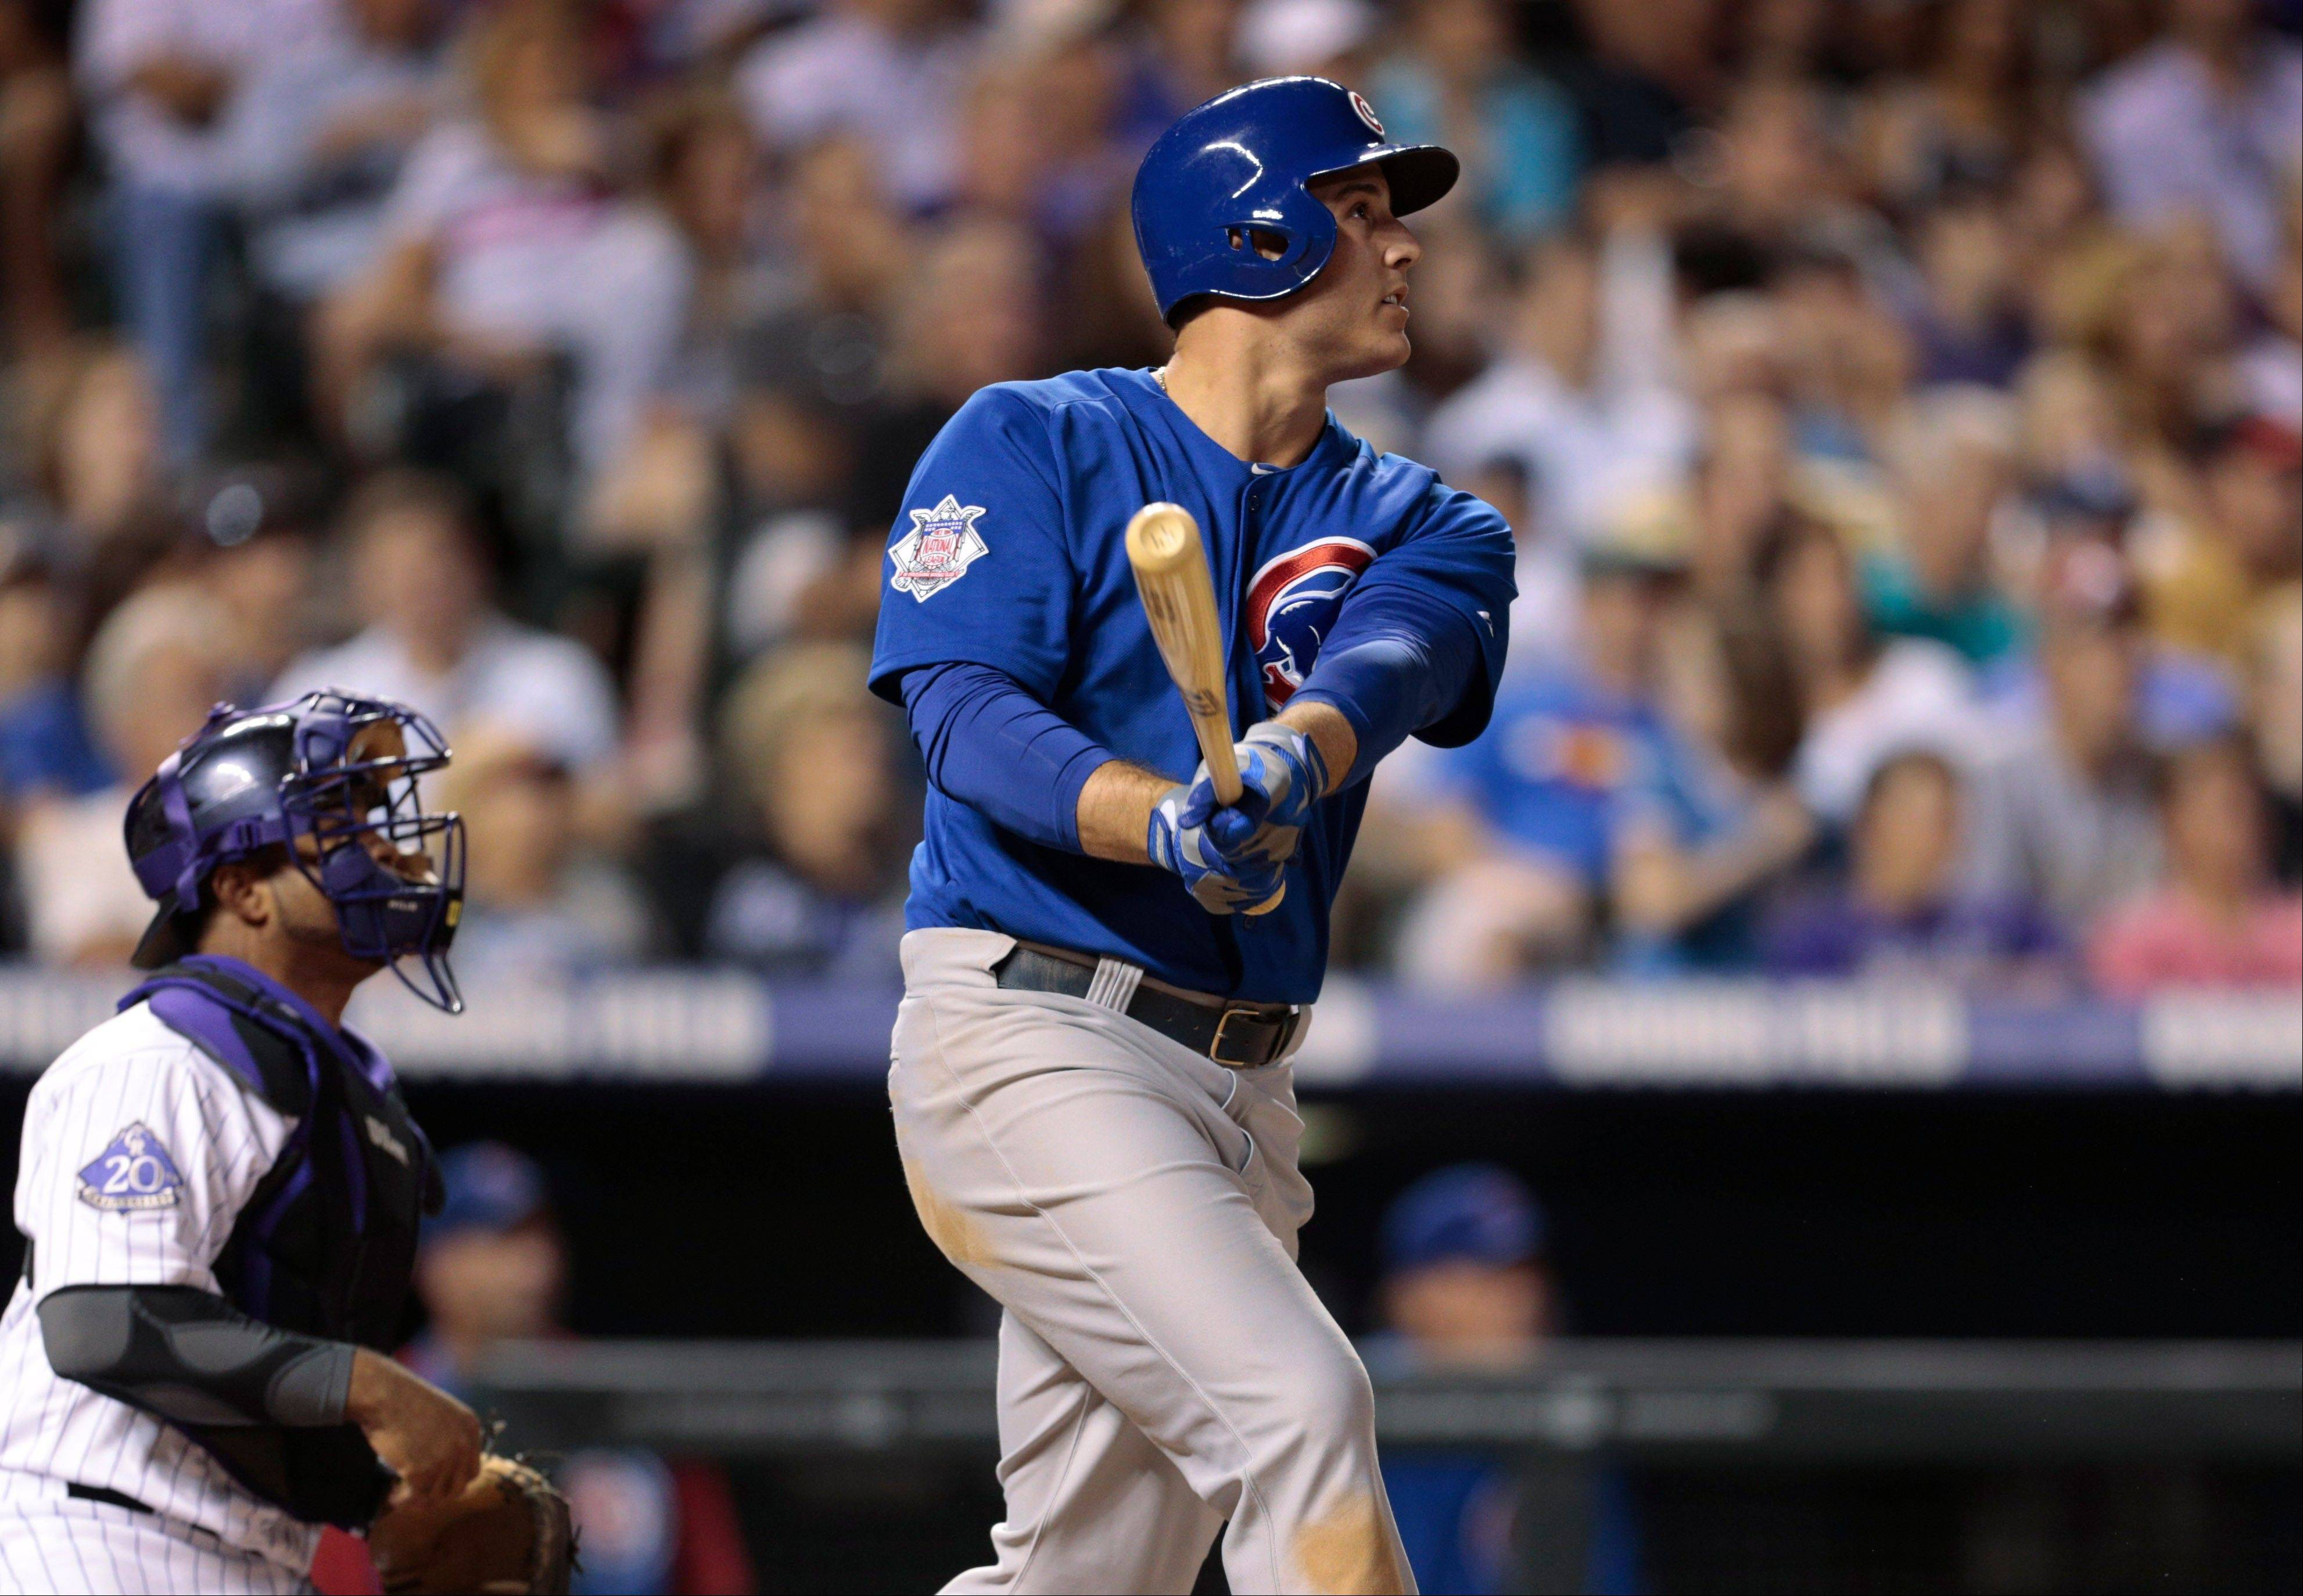 Chicago Cubs slugger Anthony Rizzo, right, and Rockies catcher Wilin Rosario watch Rizzo�s fly ball in the ninth inning of the Cubs� 3-1 victory in a baseball game in Denver.